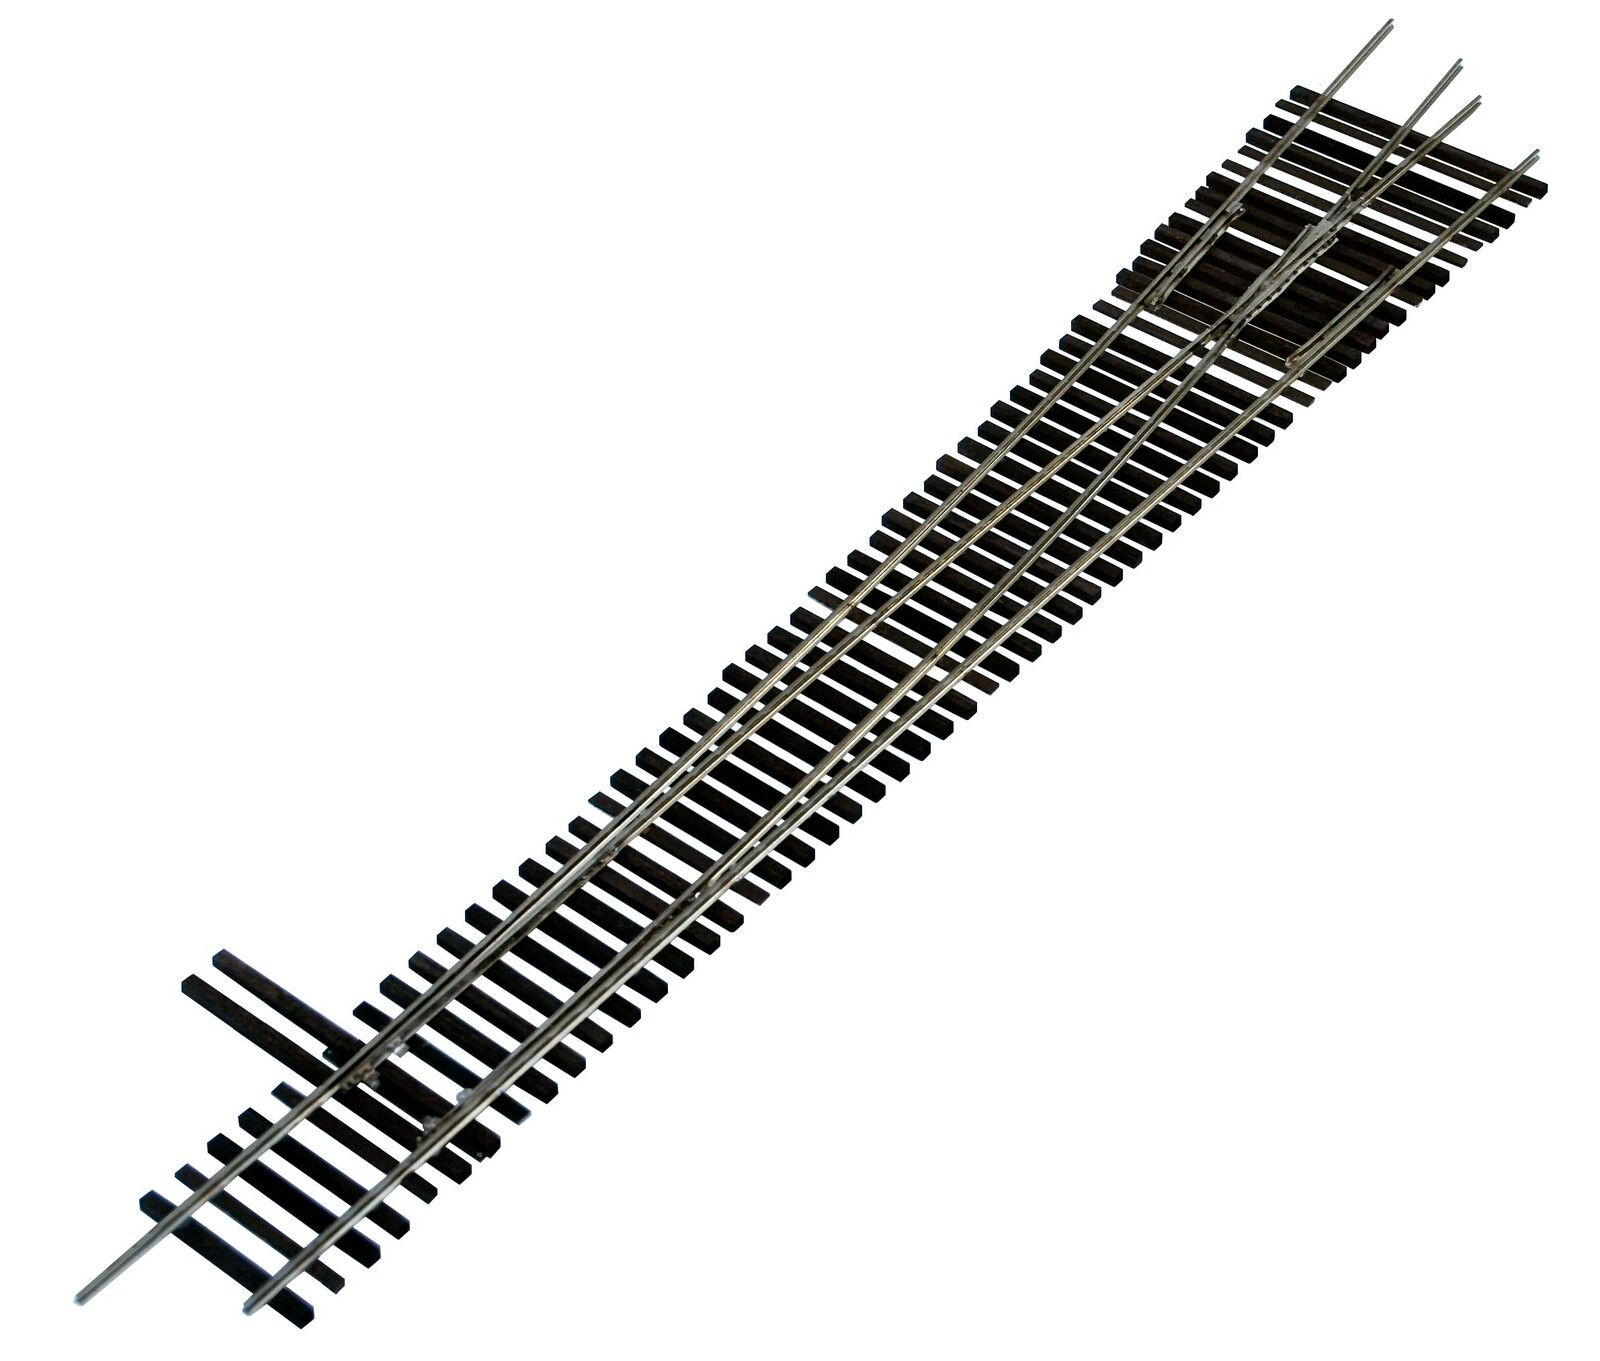 Oscale Turnouts, Inc. Left Hand Turnout, 2-Rail, Code 148,  Mounted on Ties